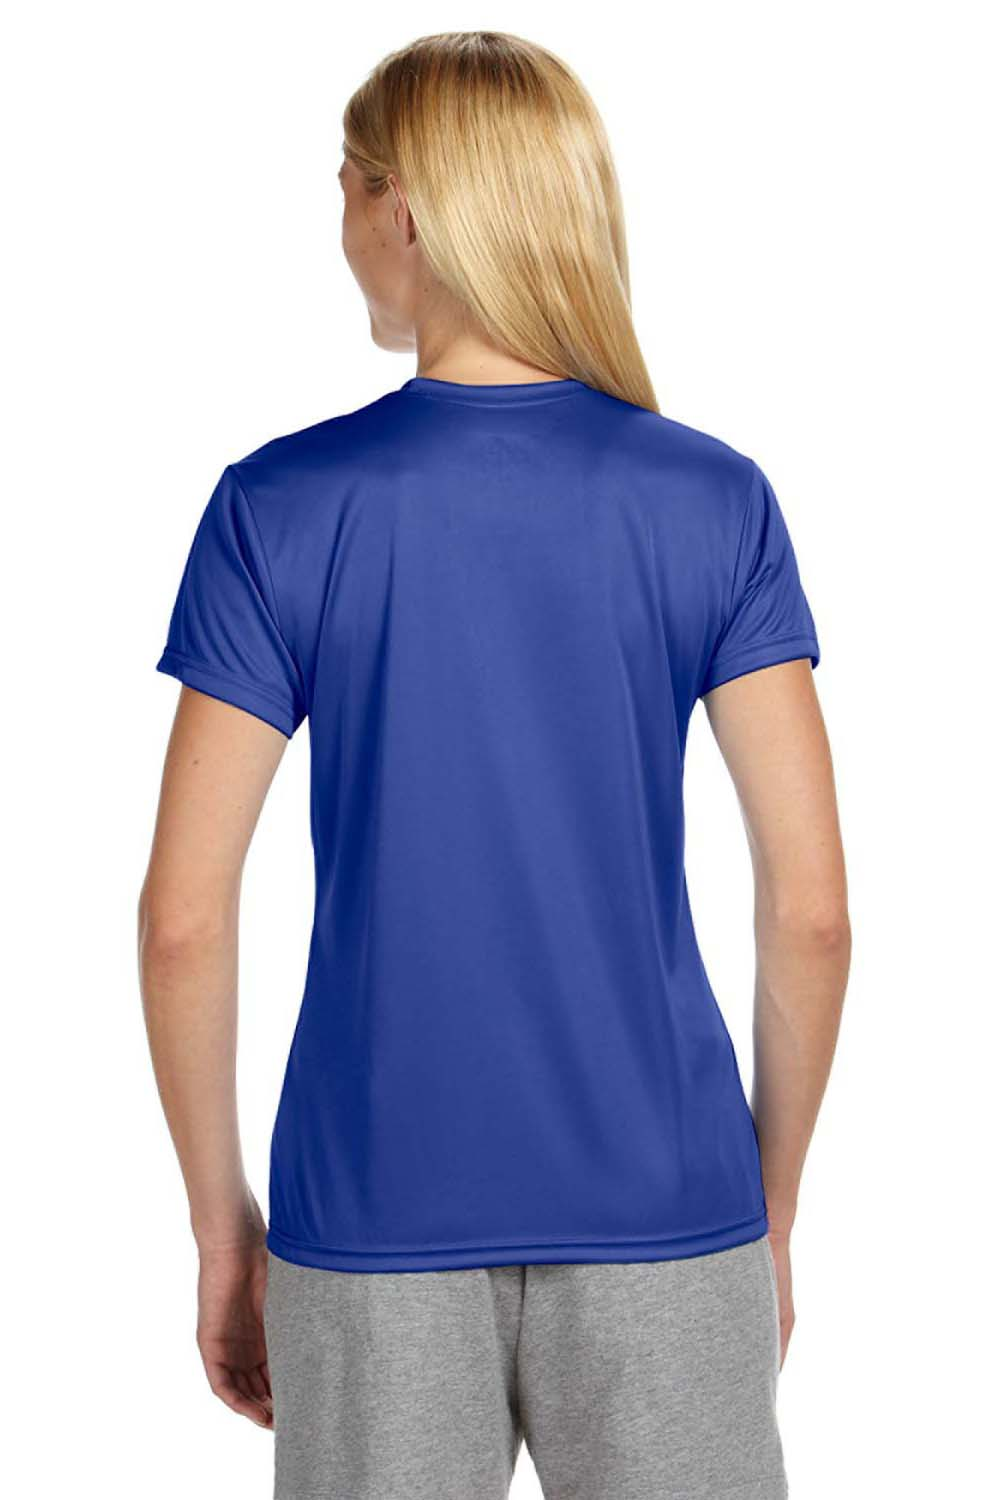 A4 NW3201 Womens Cooling Performance Moisture Wicking Short Sleeve Crewneck T-Shirt Royal Blue Back